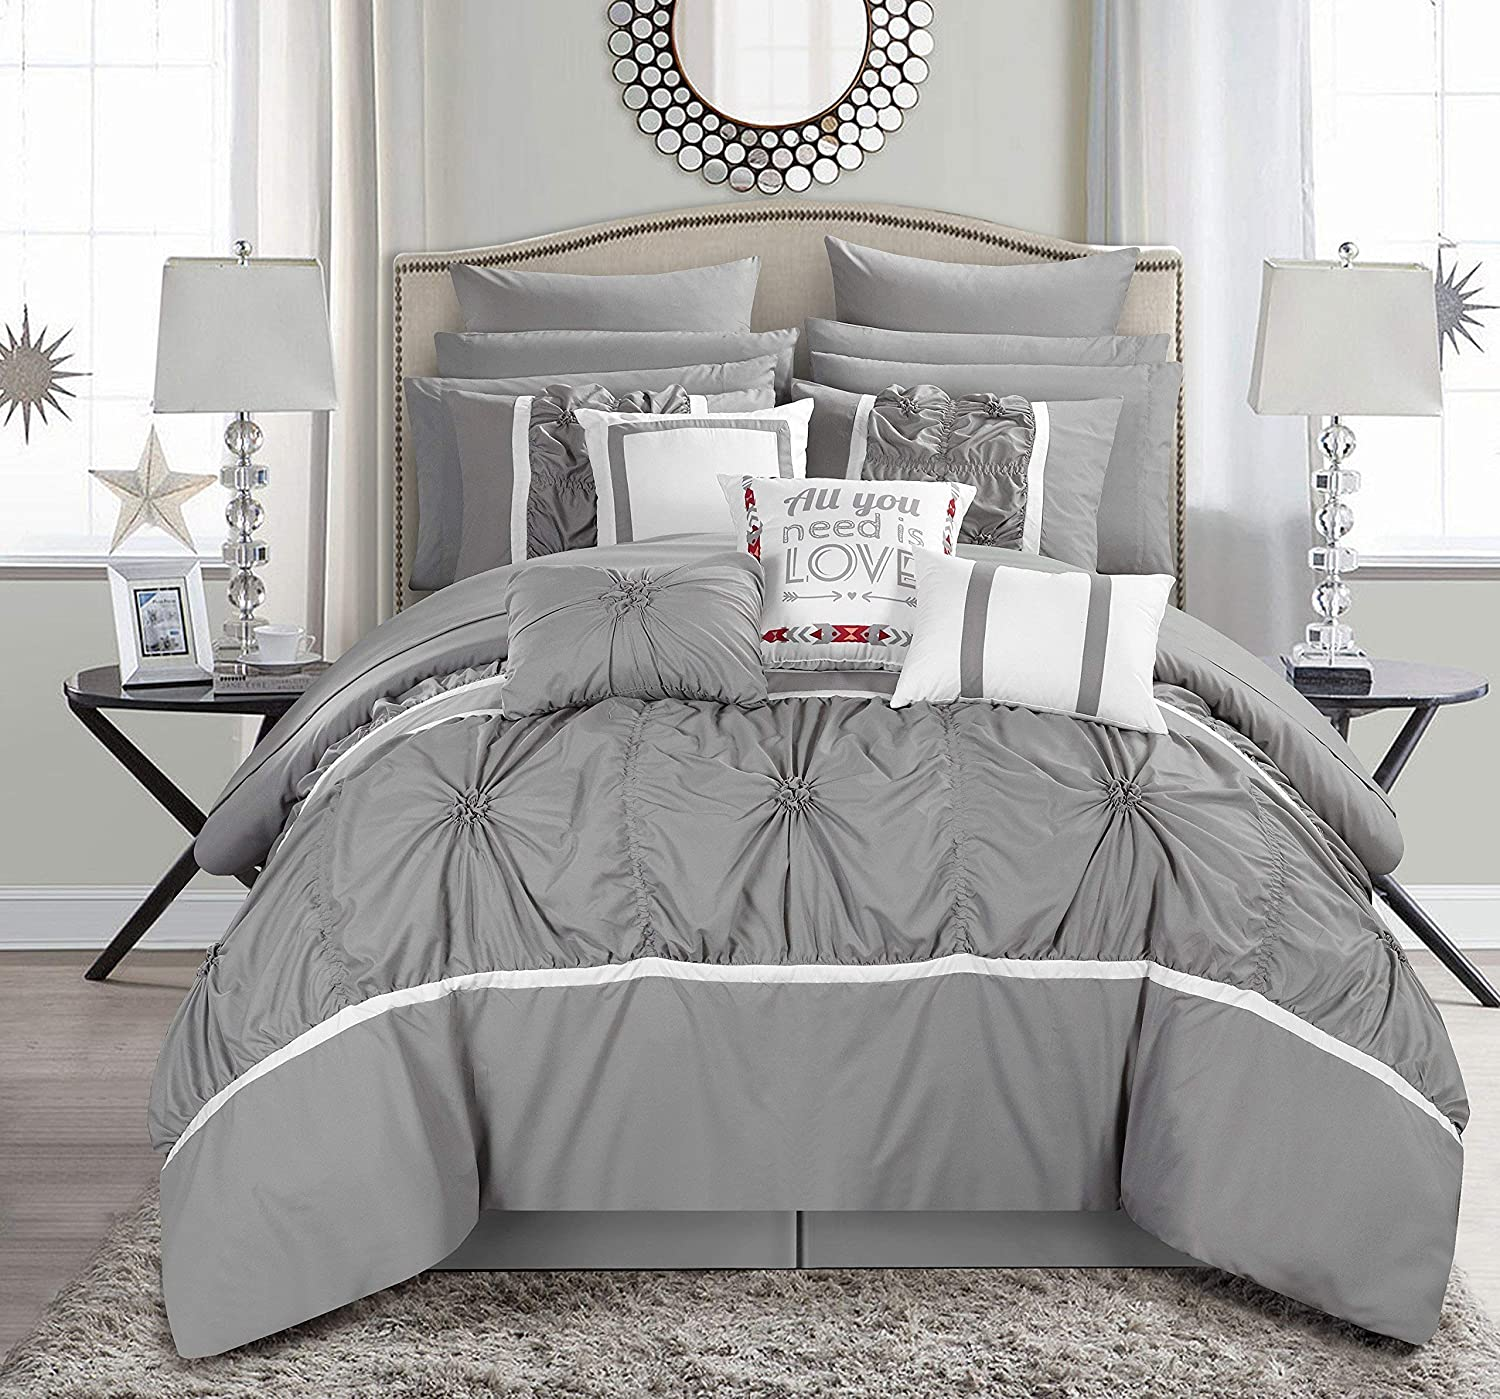 Chic Home Ashville 16 Comforter Set, King, Silver, Piece